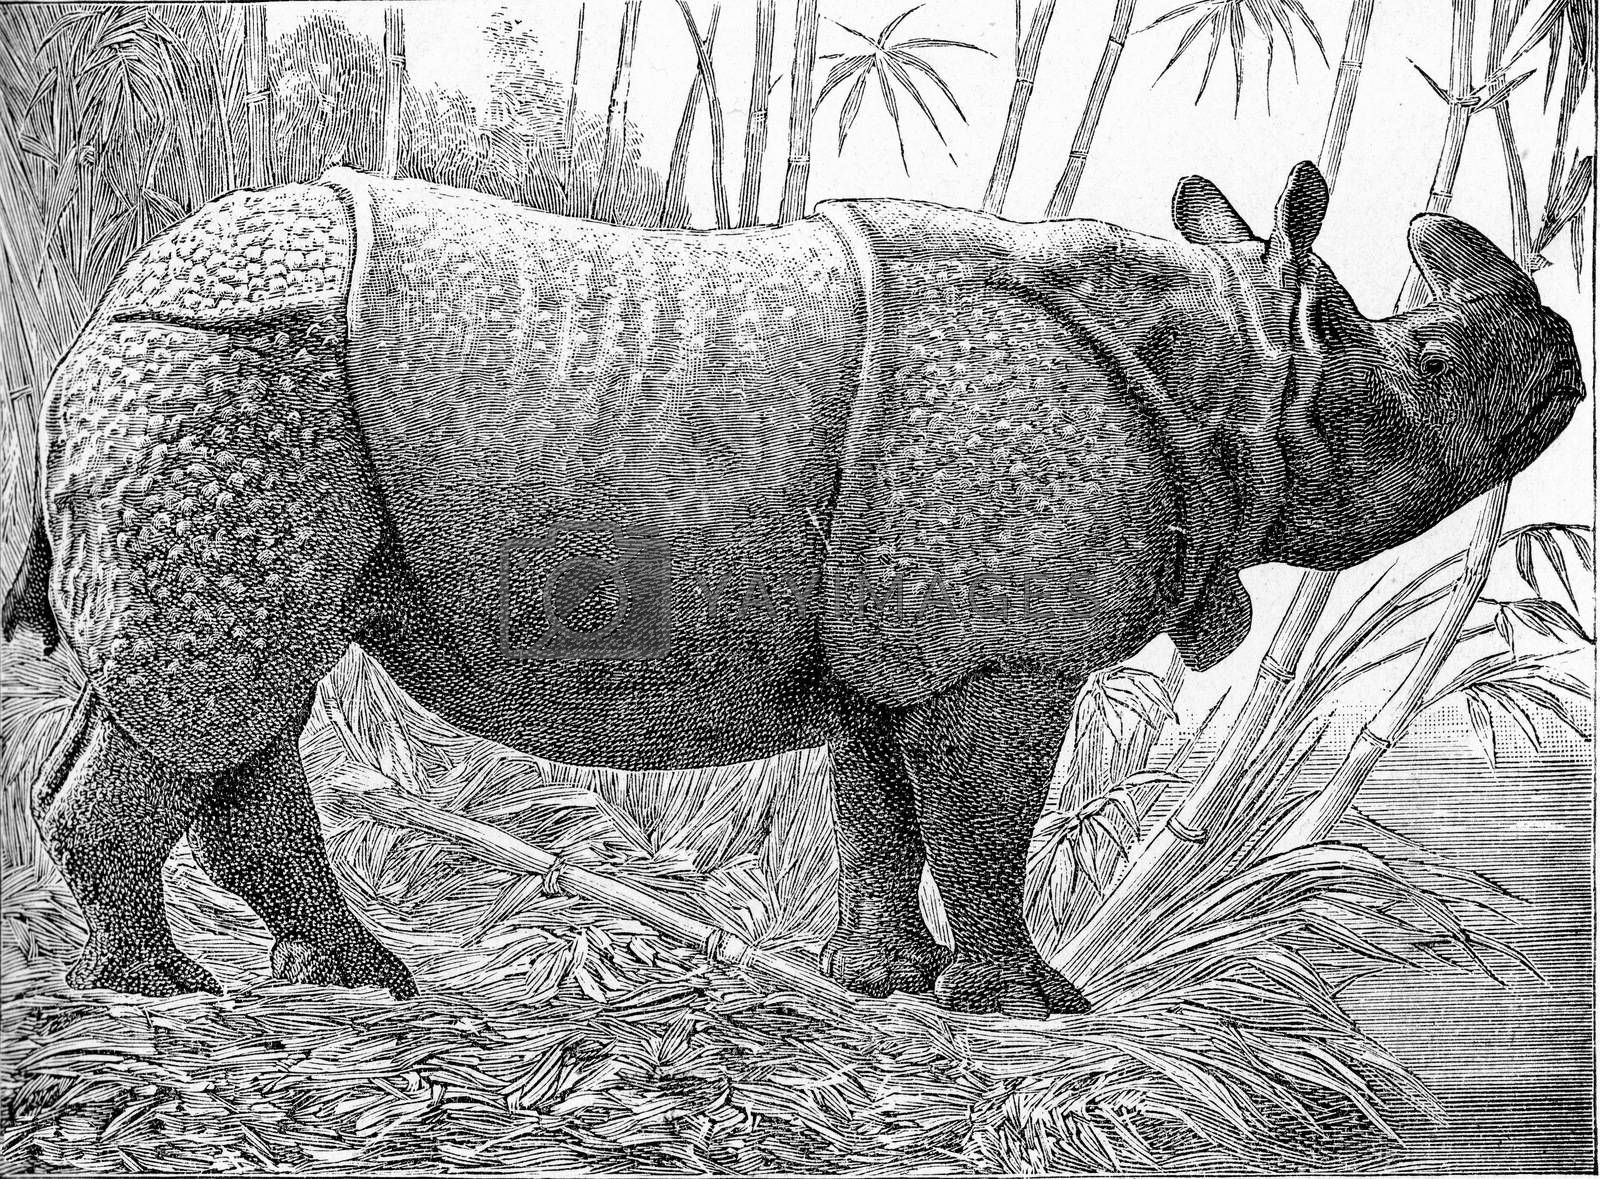 The one-horned rhino, vintage engraved illustration. From Deutch Vogel Teaching in Zoology.